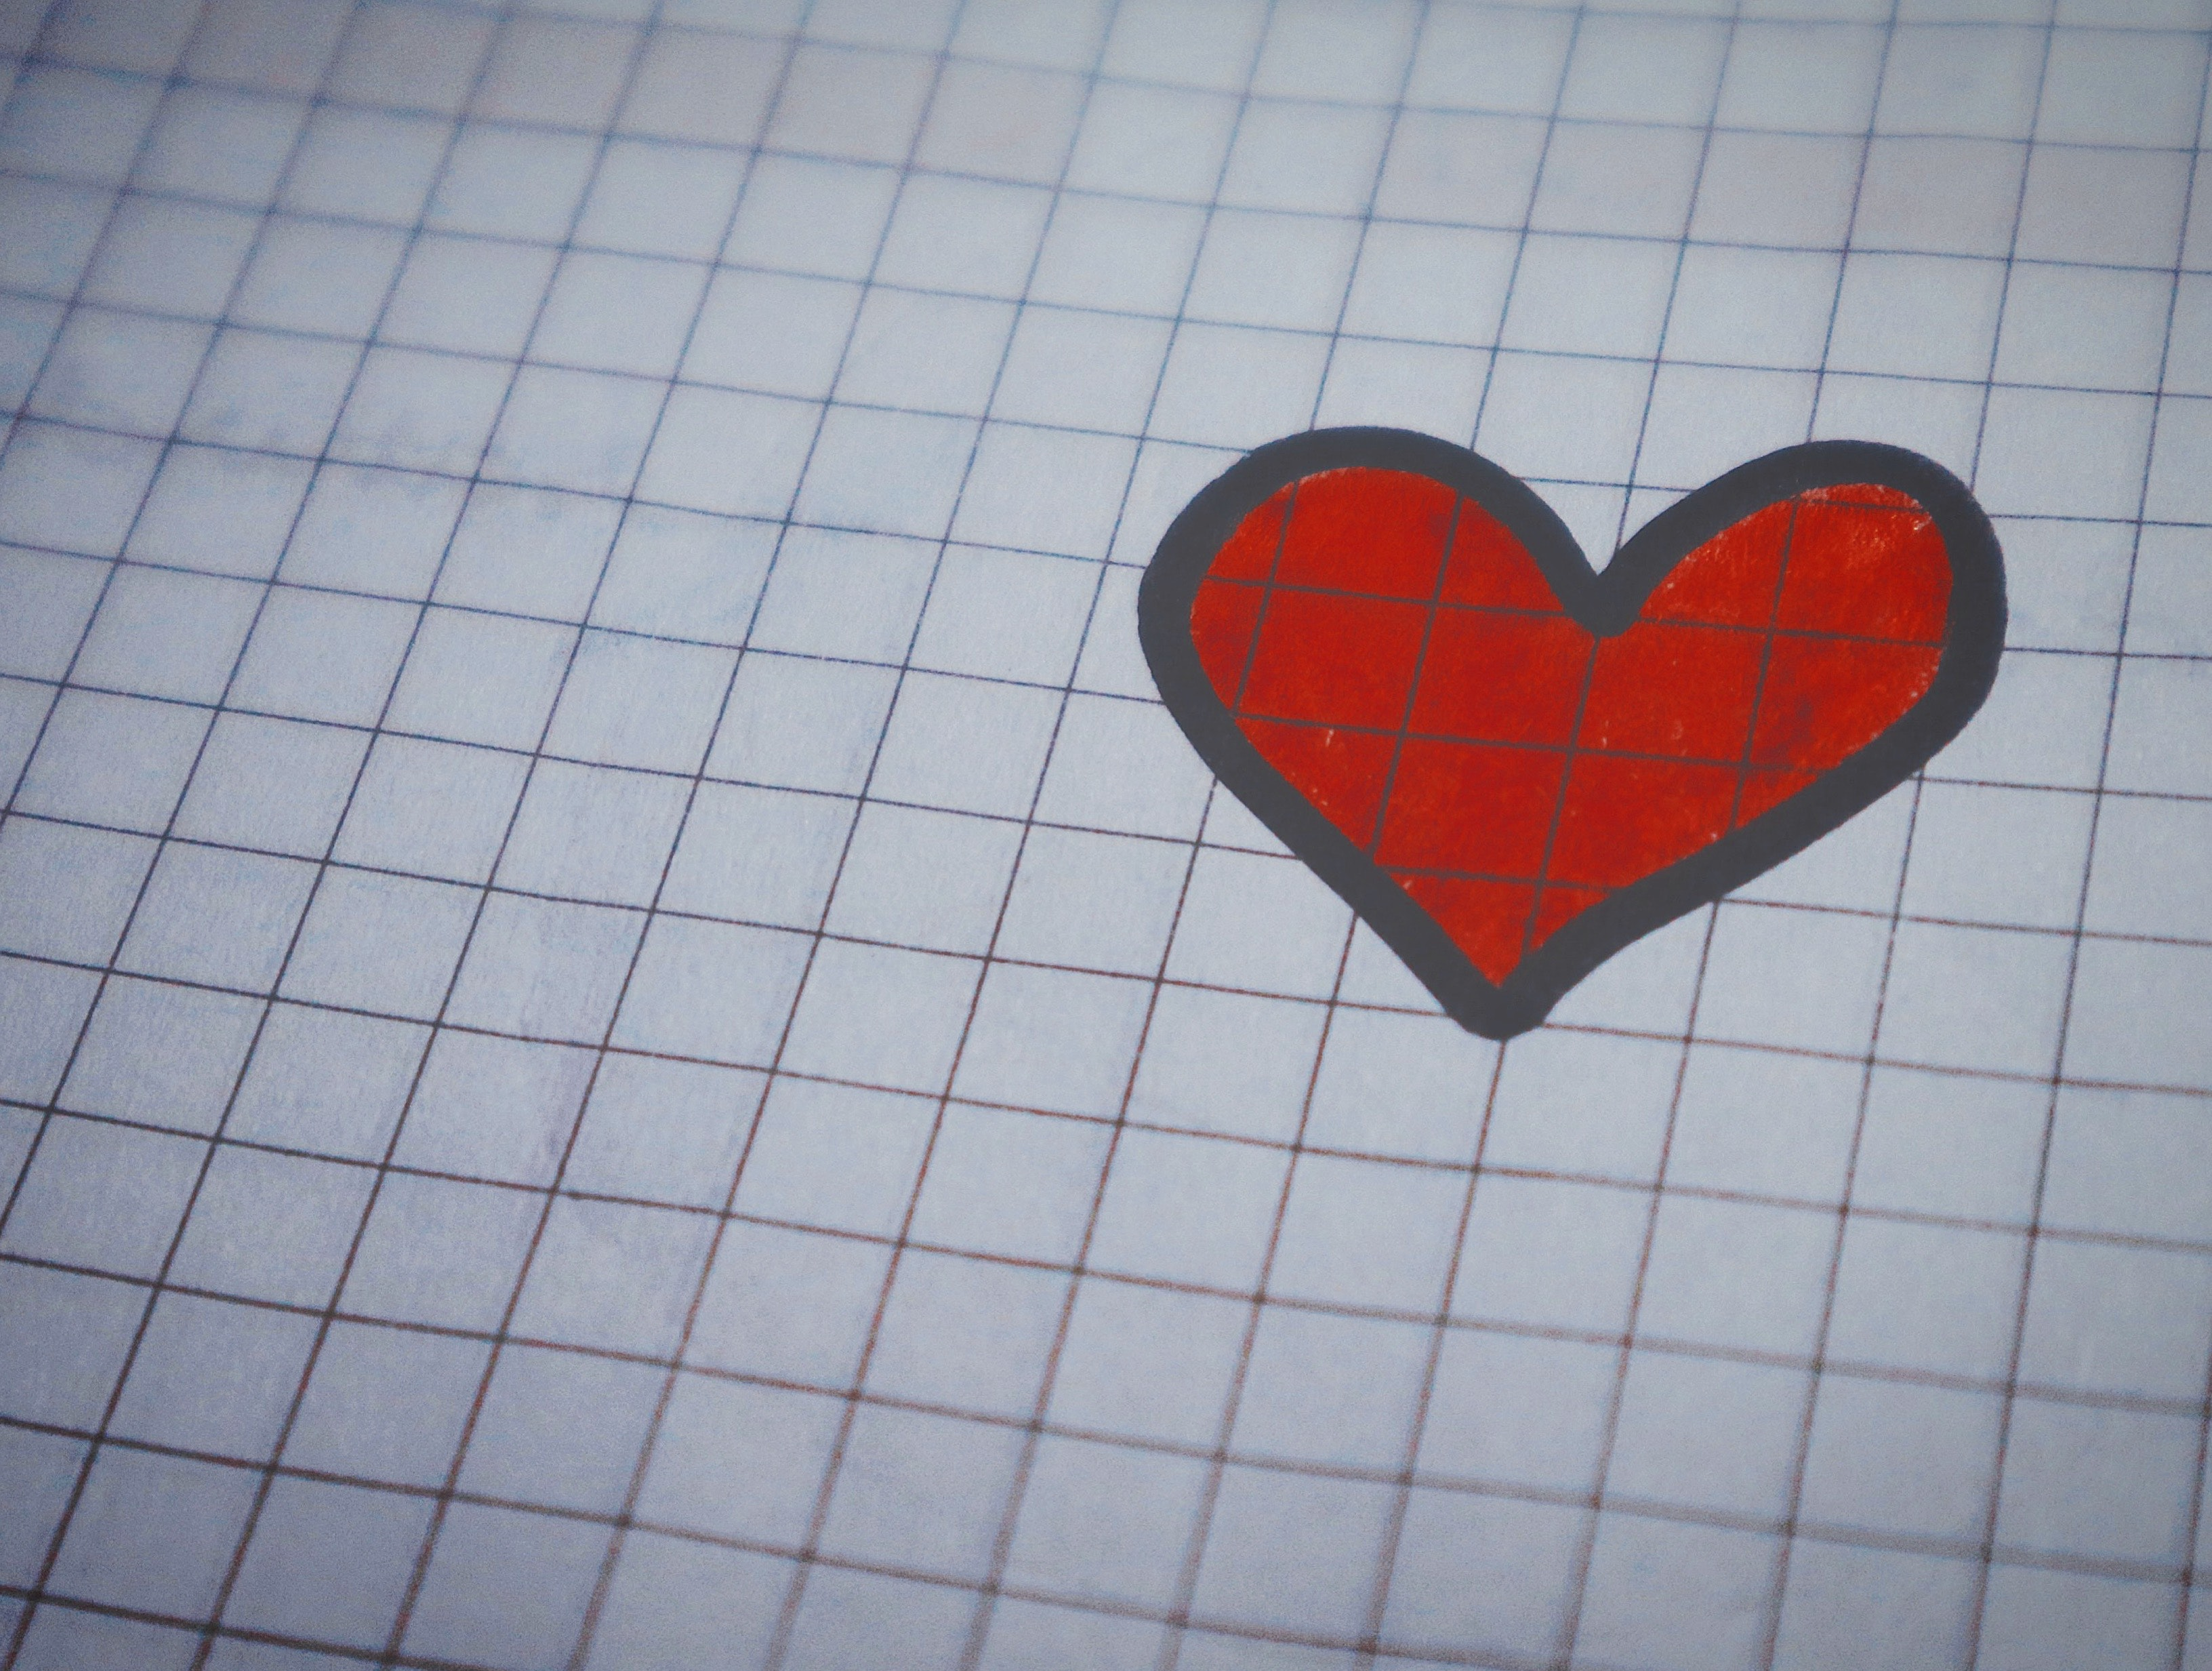 White Page of Graphing Paper With Red Heart Drawing, Art, Card, Close-up, Color, HQ Photo